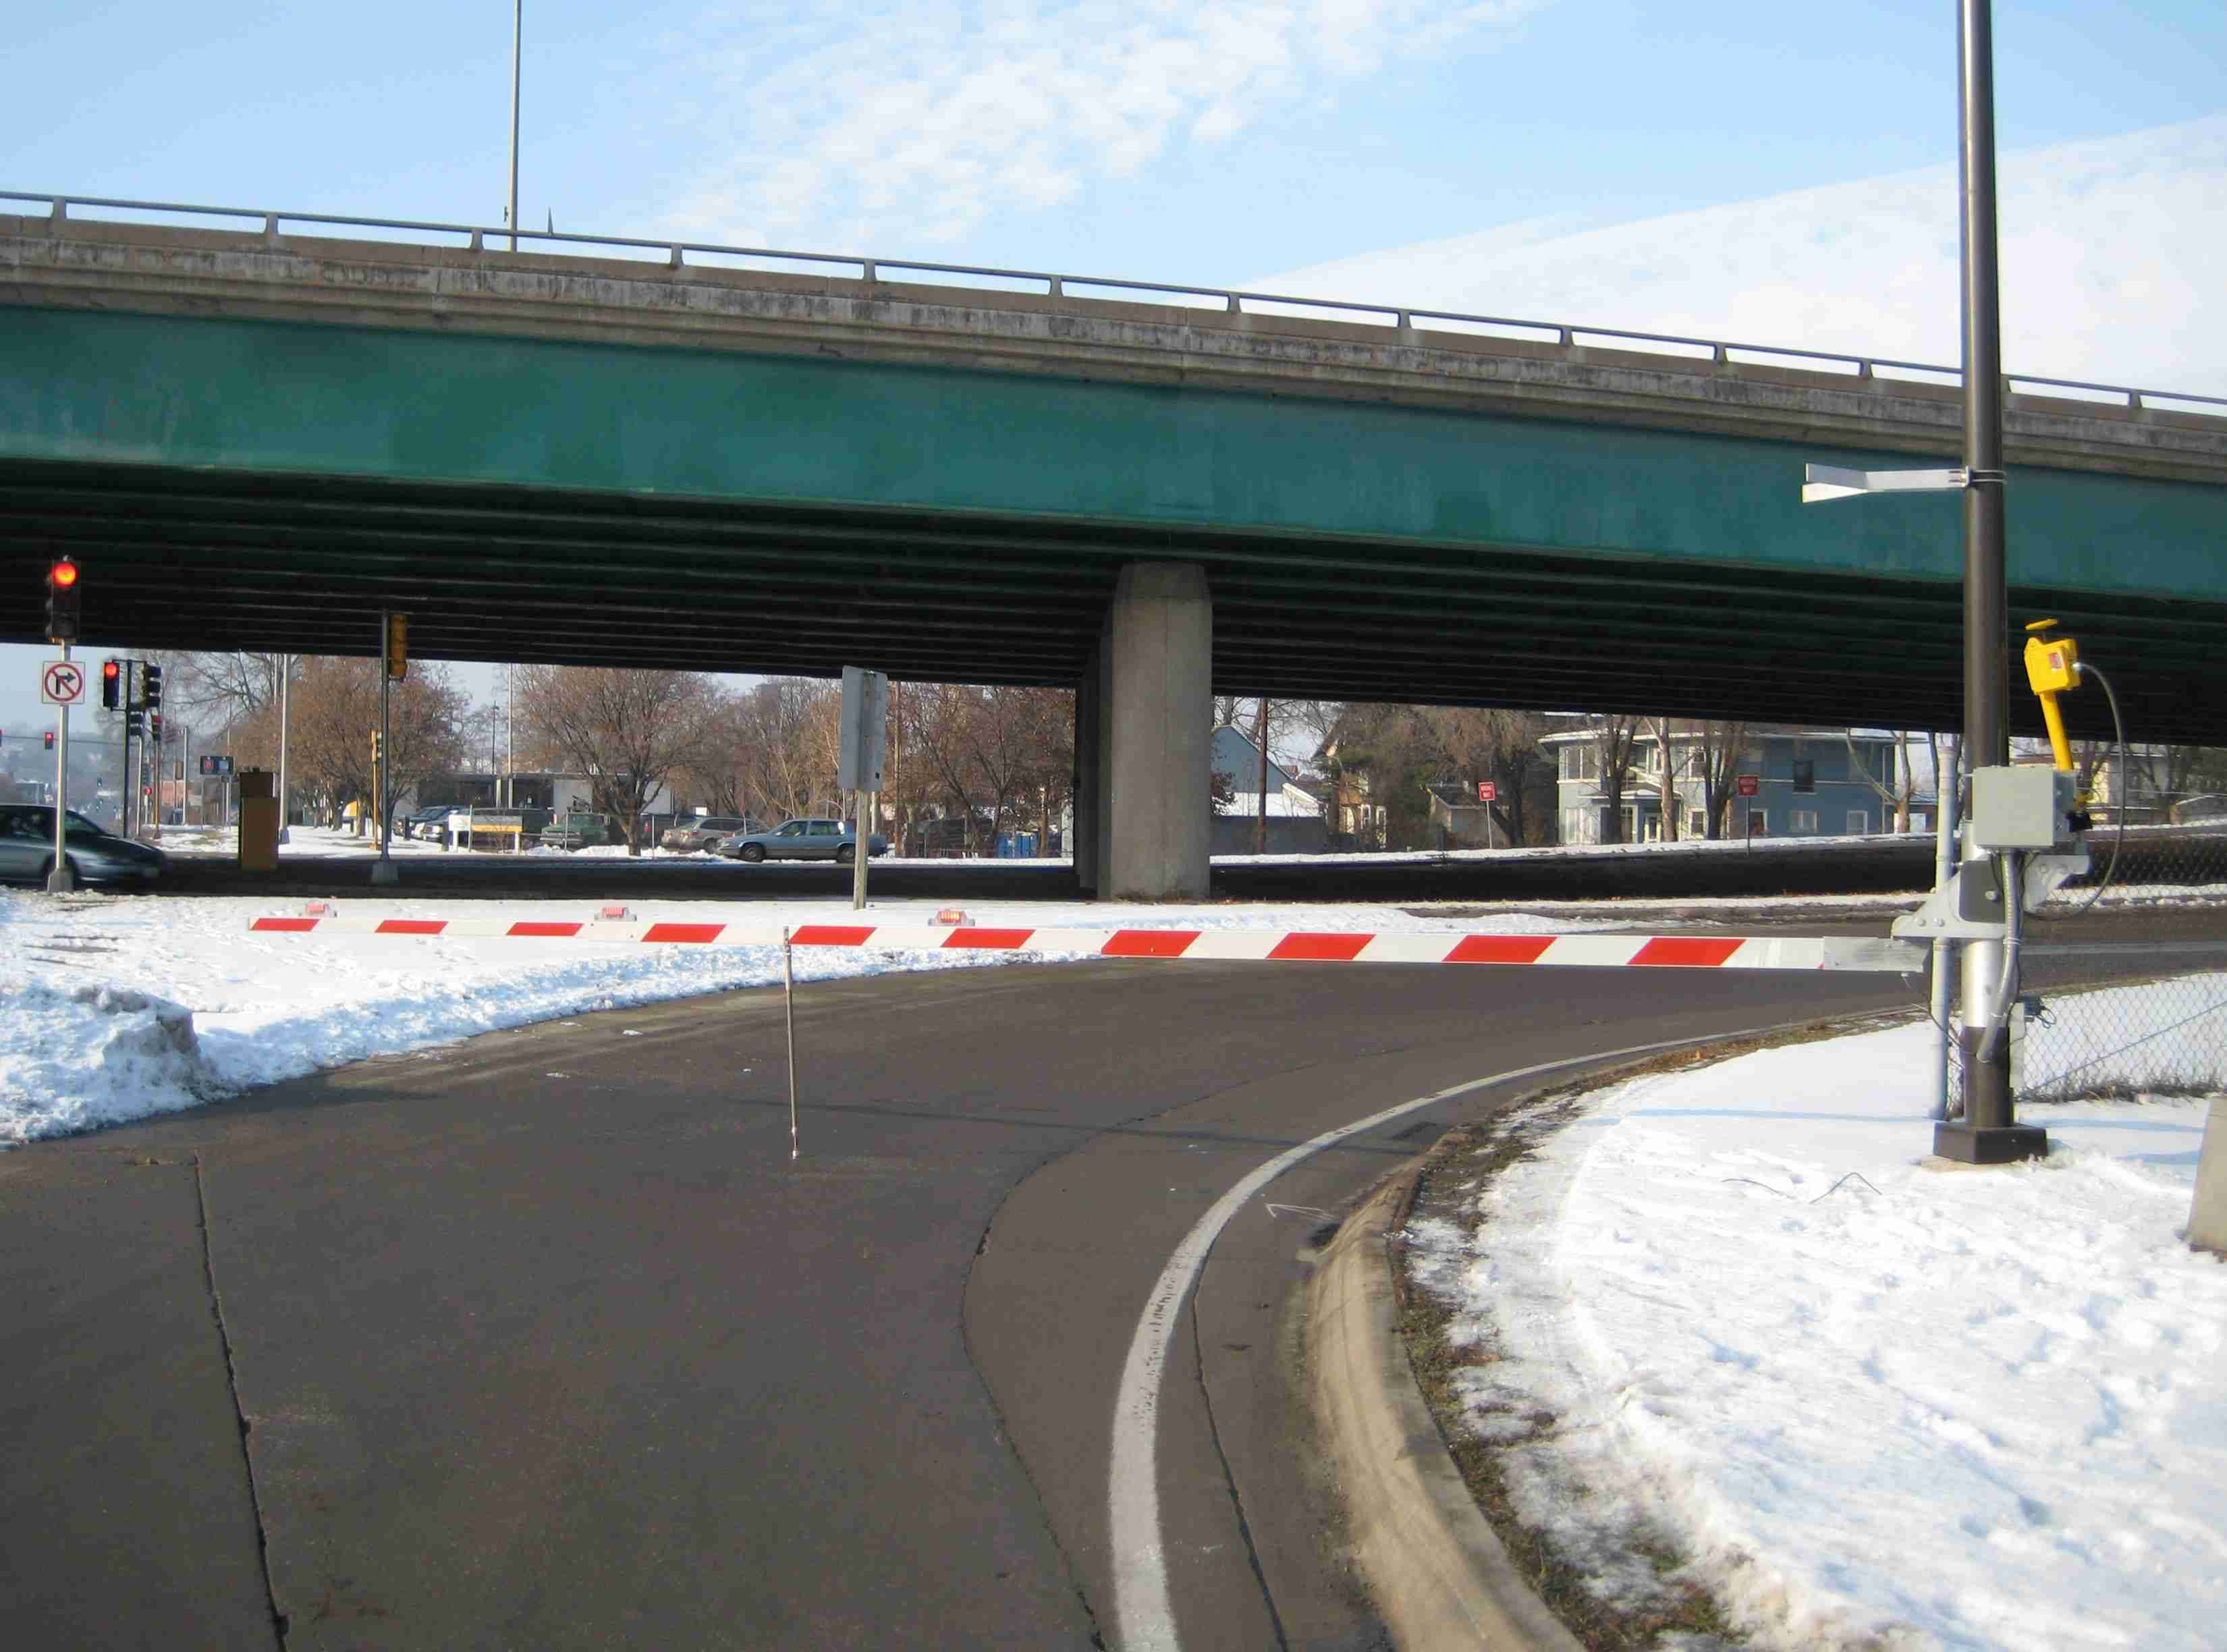 New Automatic Closure Gates in Iowa - From Iowa Department of Transportation